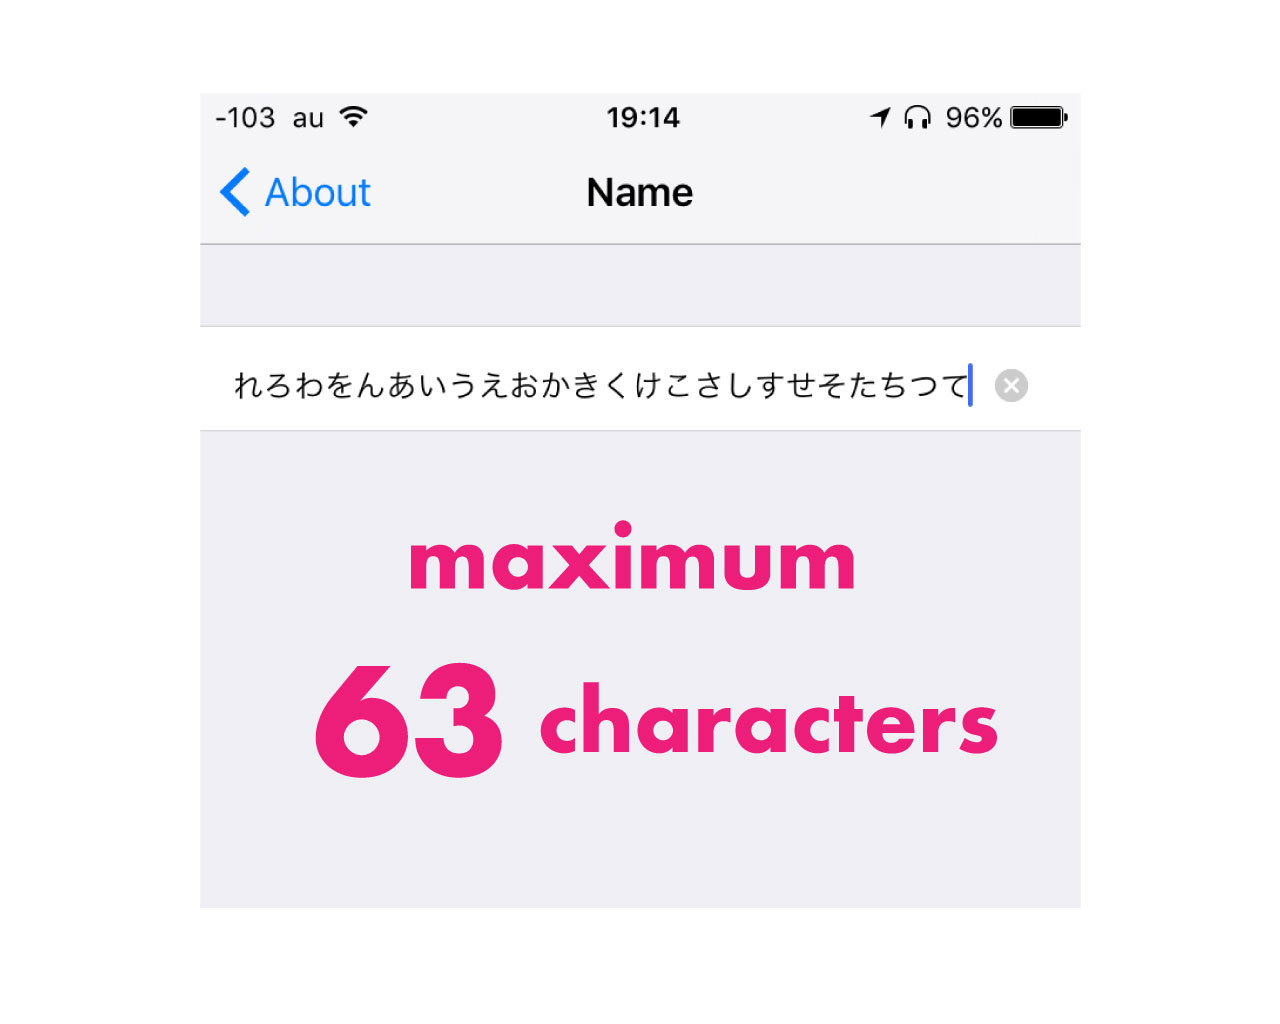 iphone-name-word-count-maximum-8